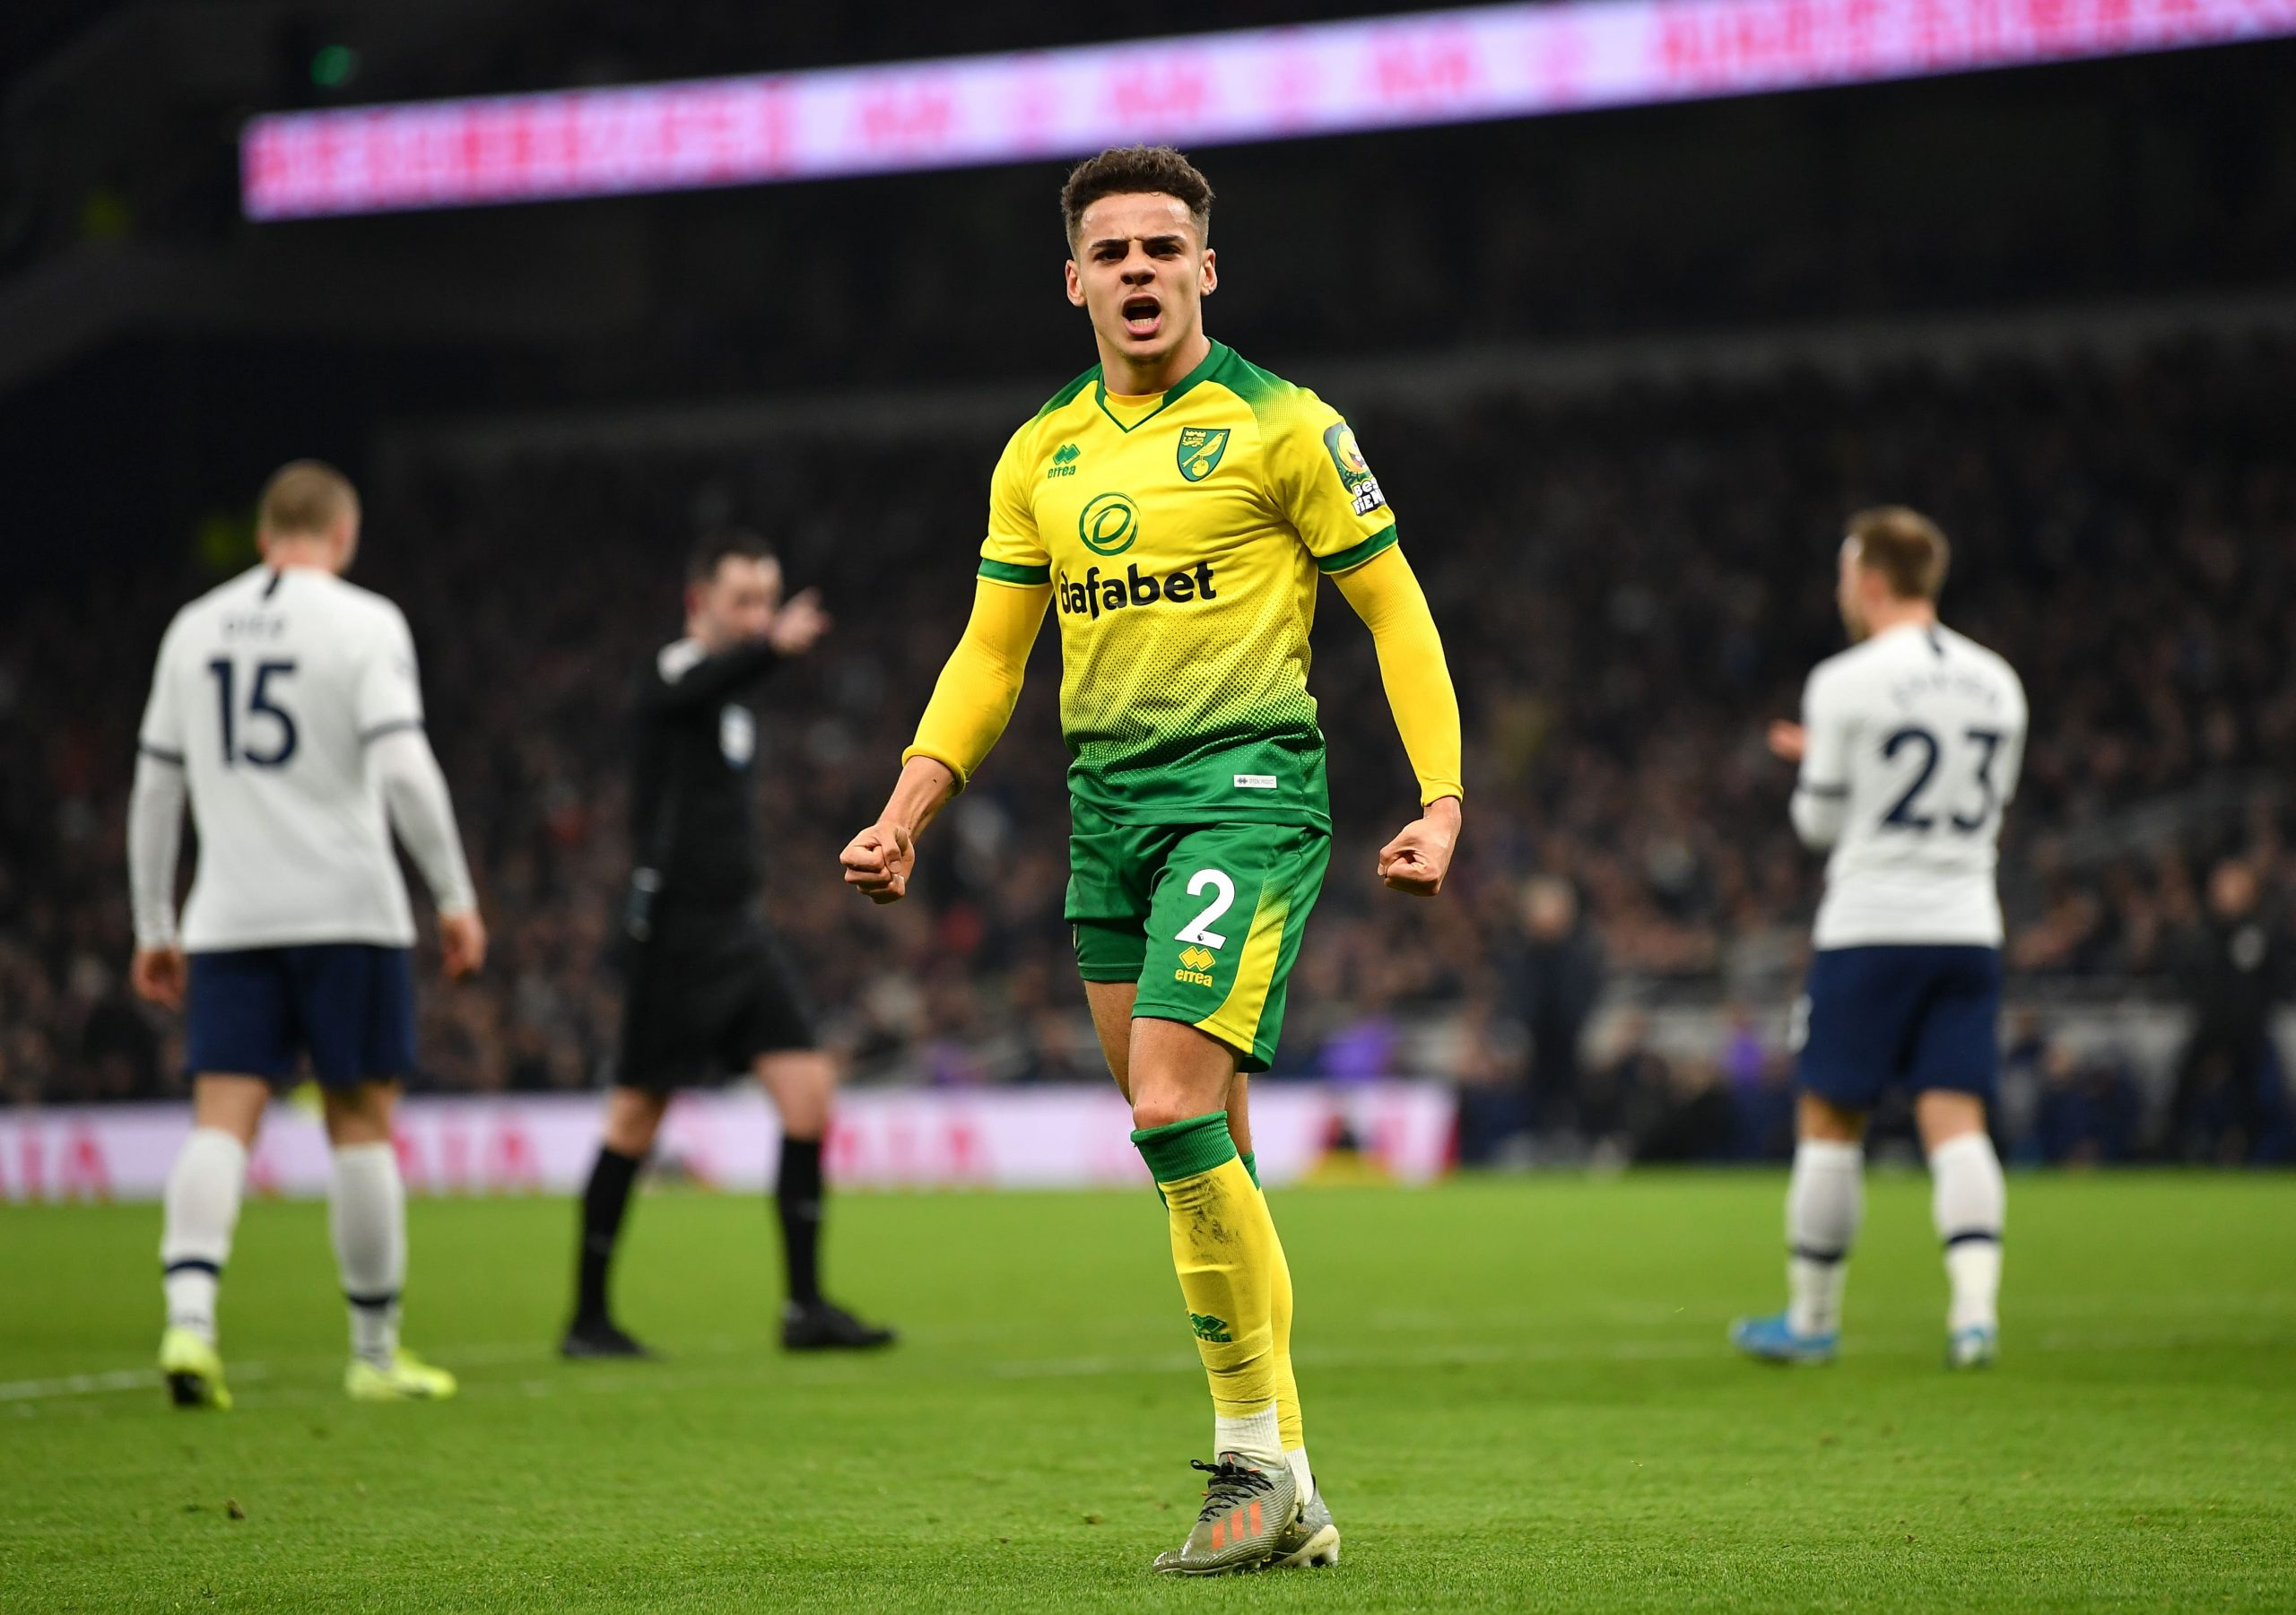 Max Aarons in action for Norwich City against Tottenham Hotspur. (GETTY Images)